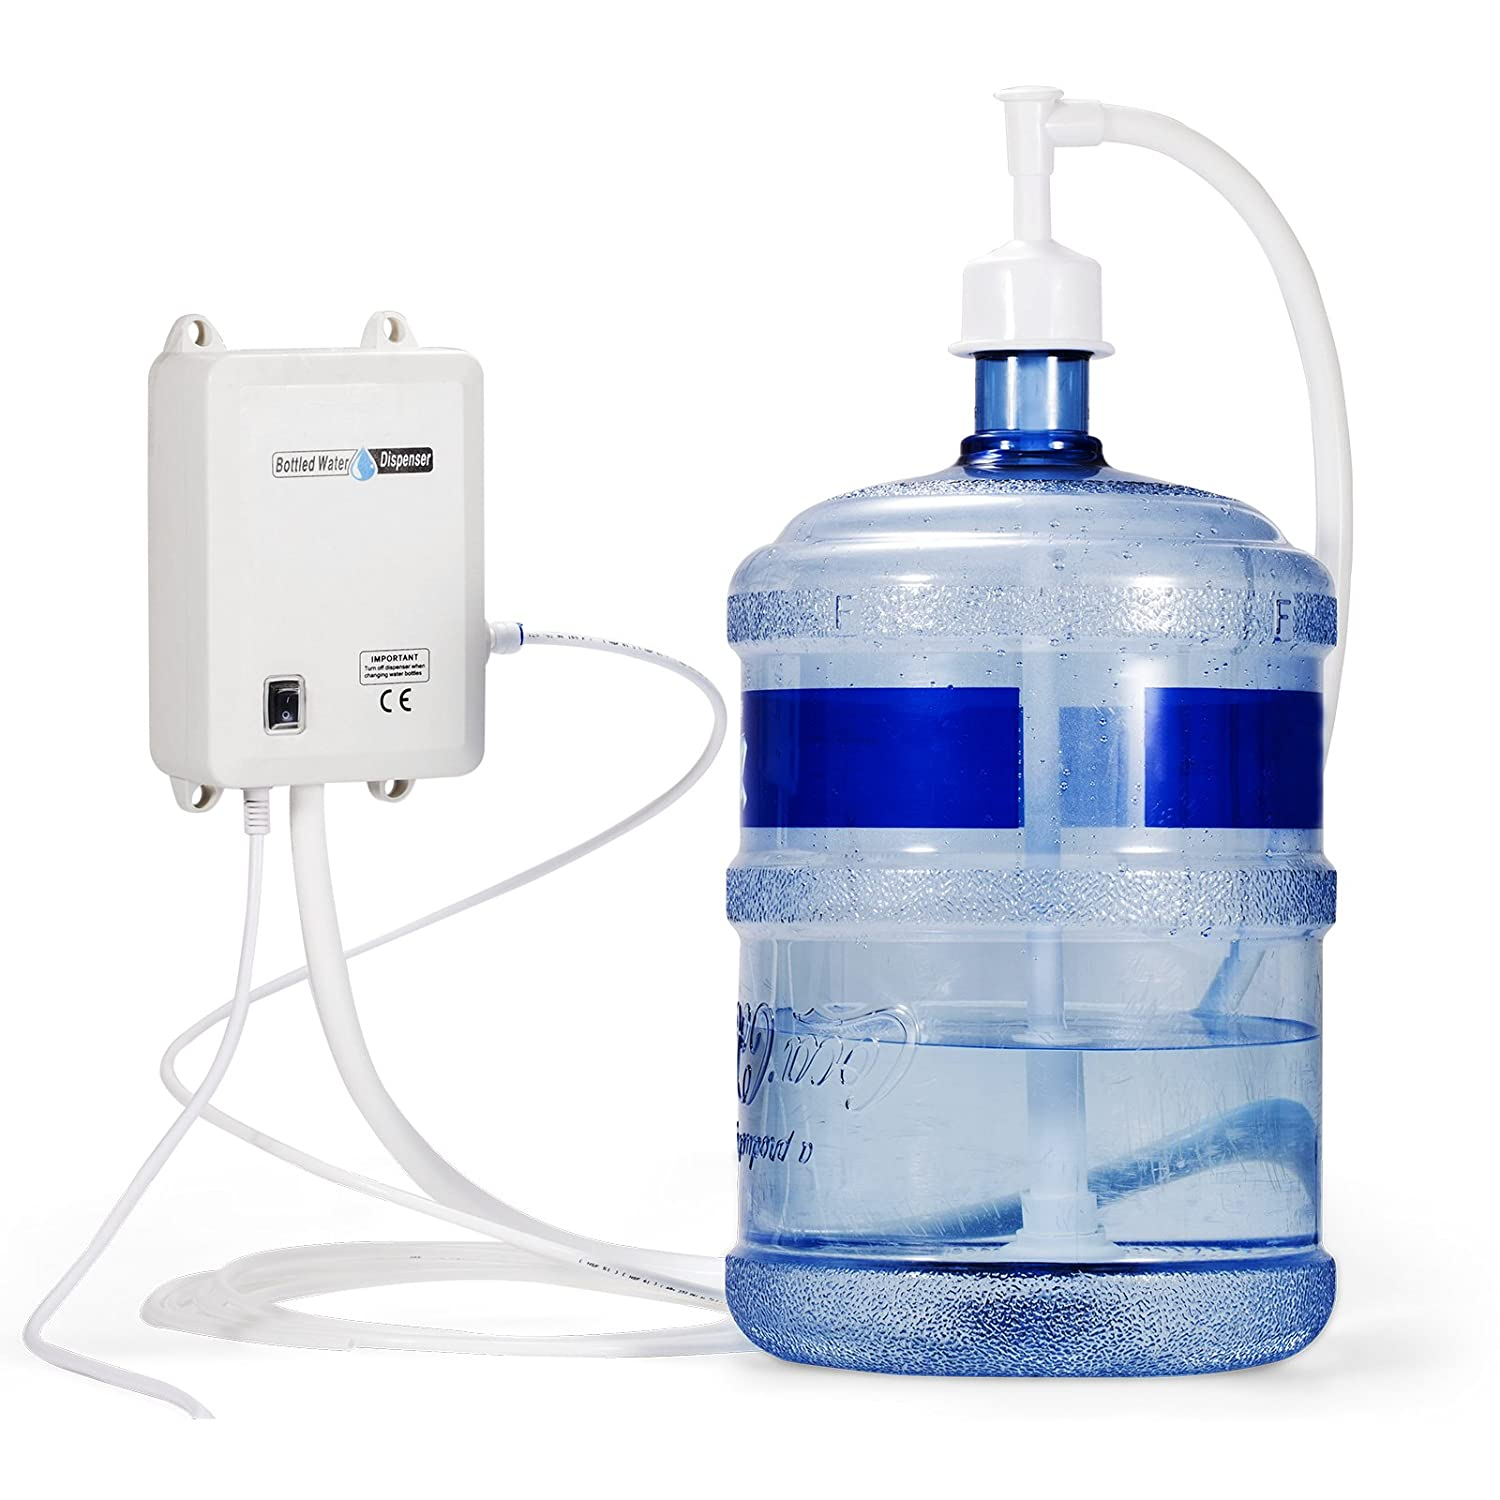 VEVOR Bottled Water Dispensing System 20 ft Water Dispensing Pump System with US Plug 115V AC Perfect for 5 Gallon Bottle (Single Inlet) - - Amazon.com